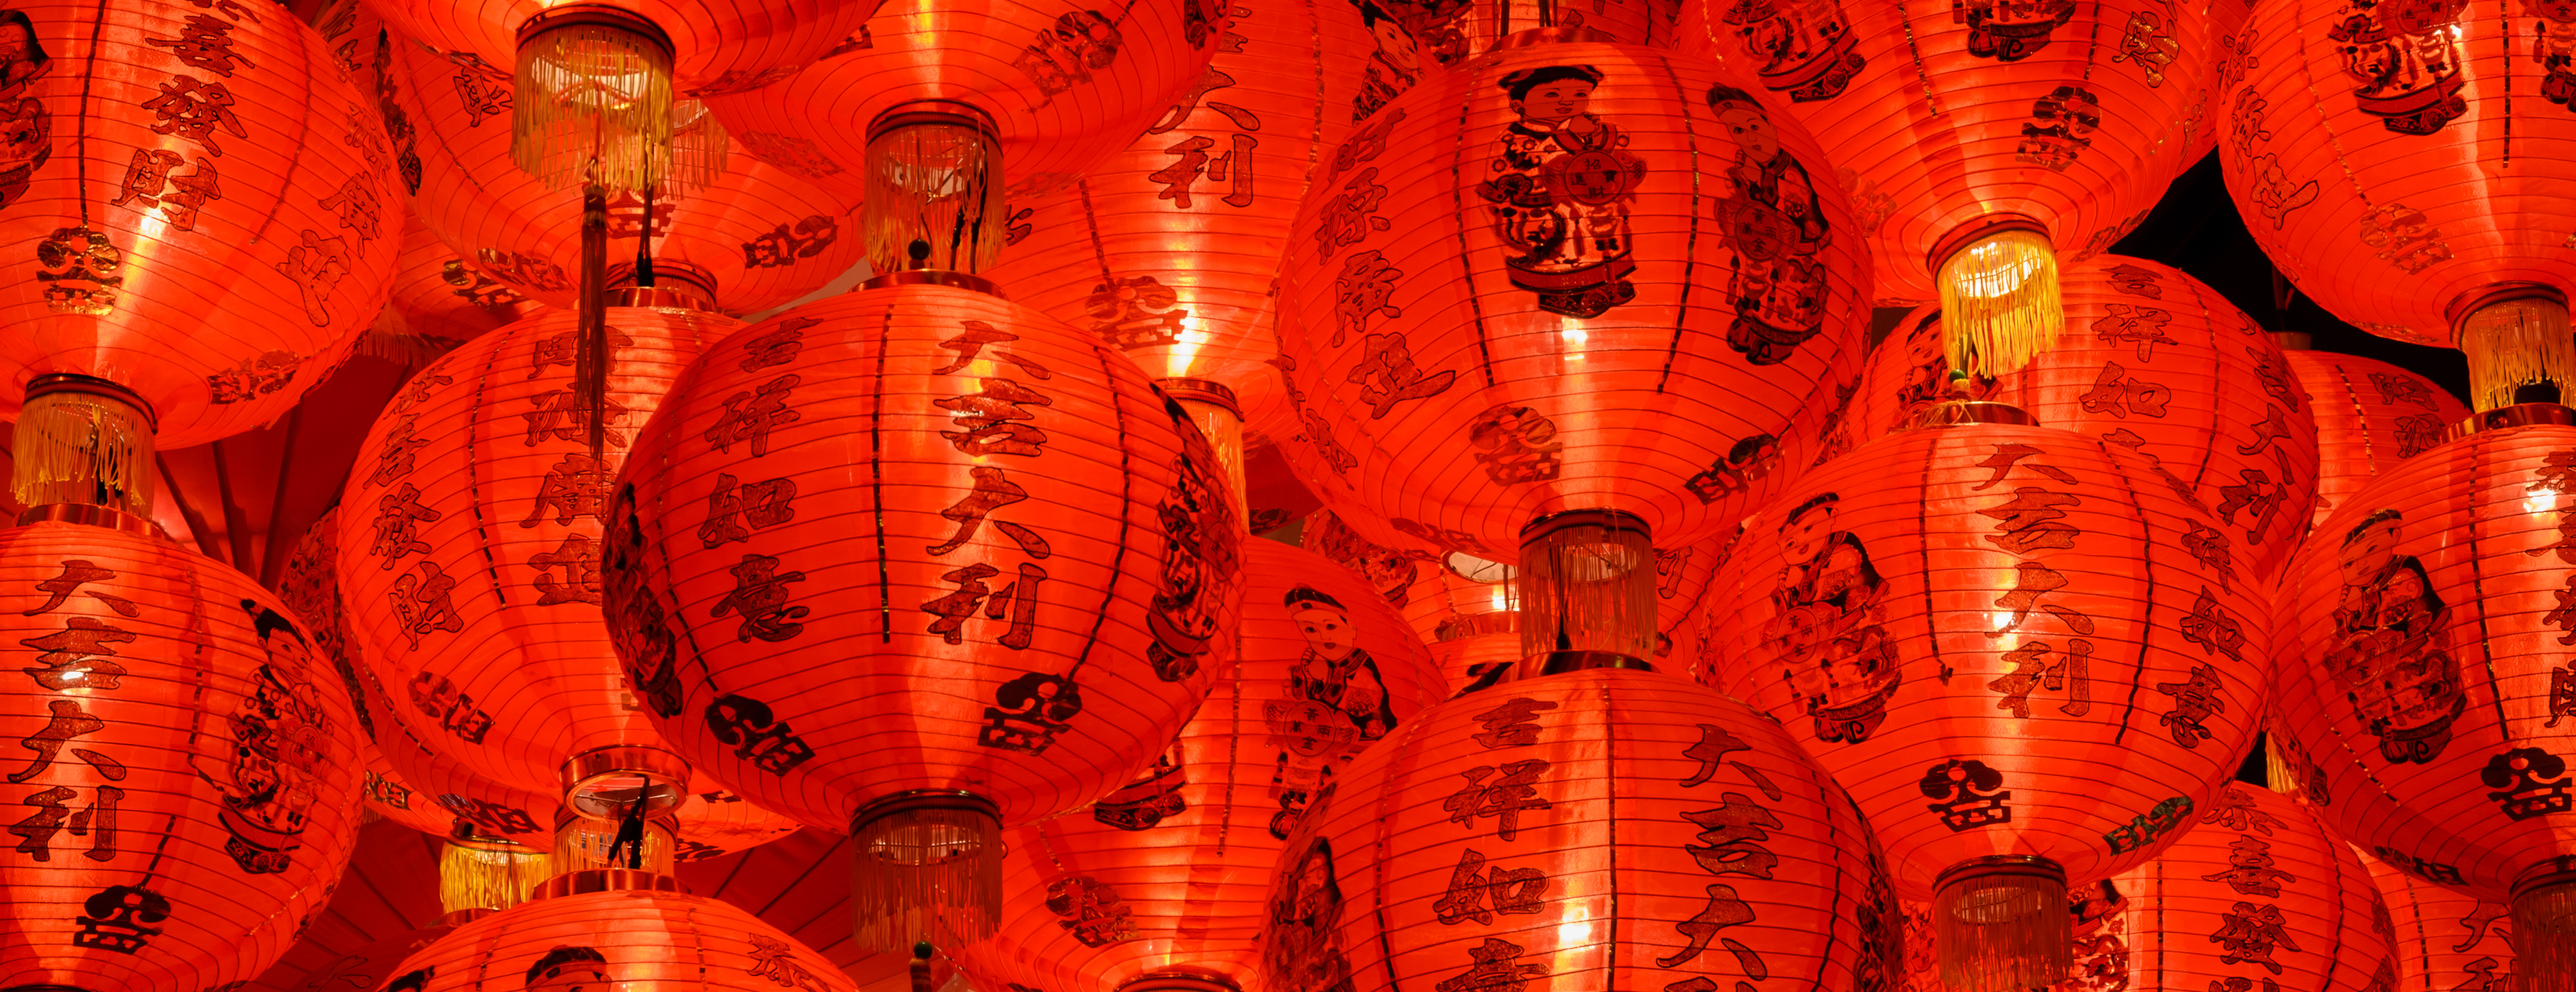 Rote Chinesiche Lampen